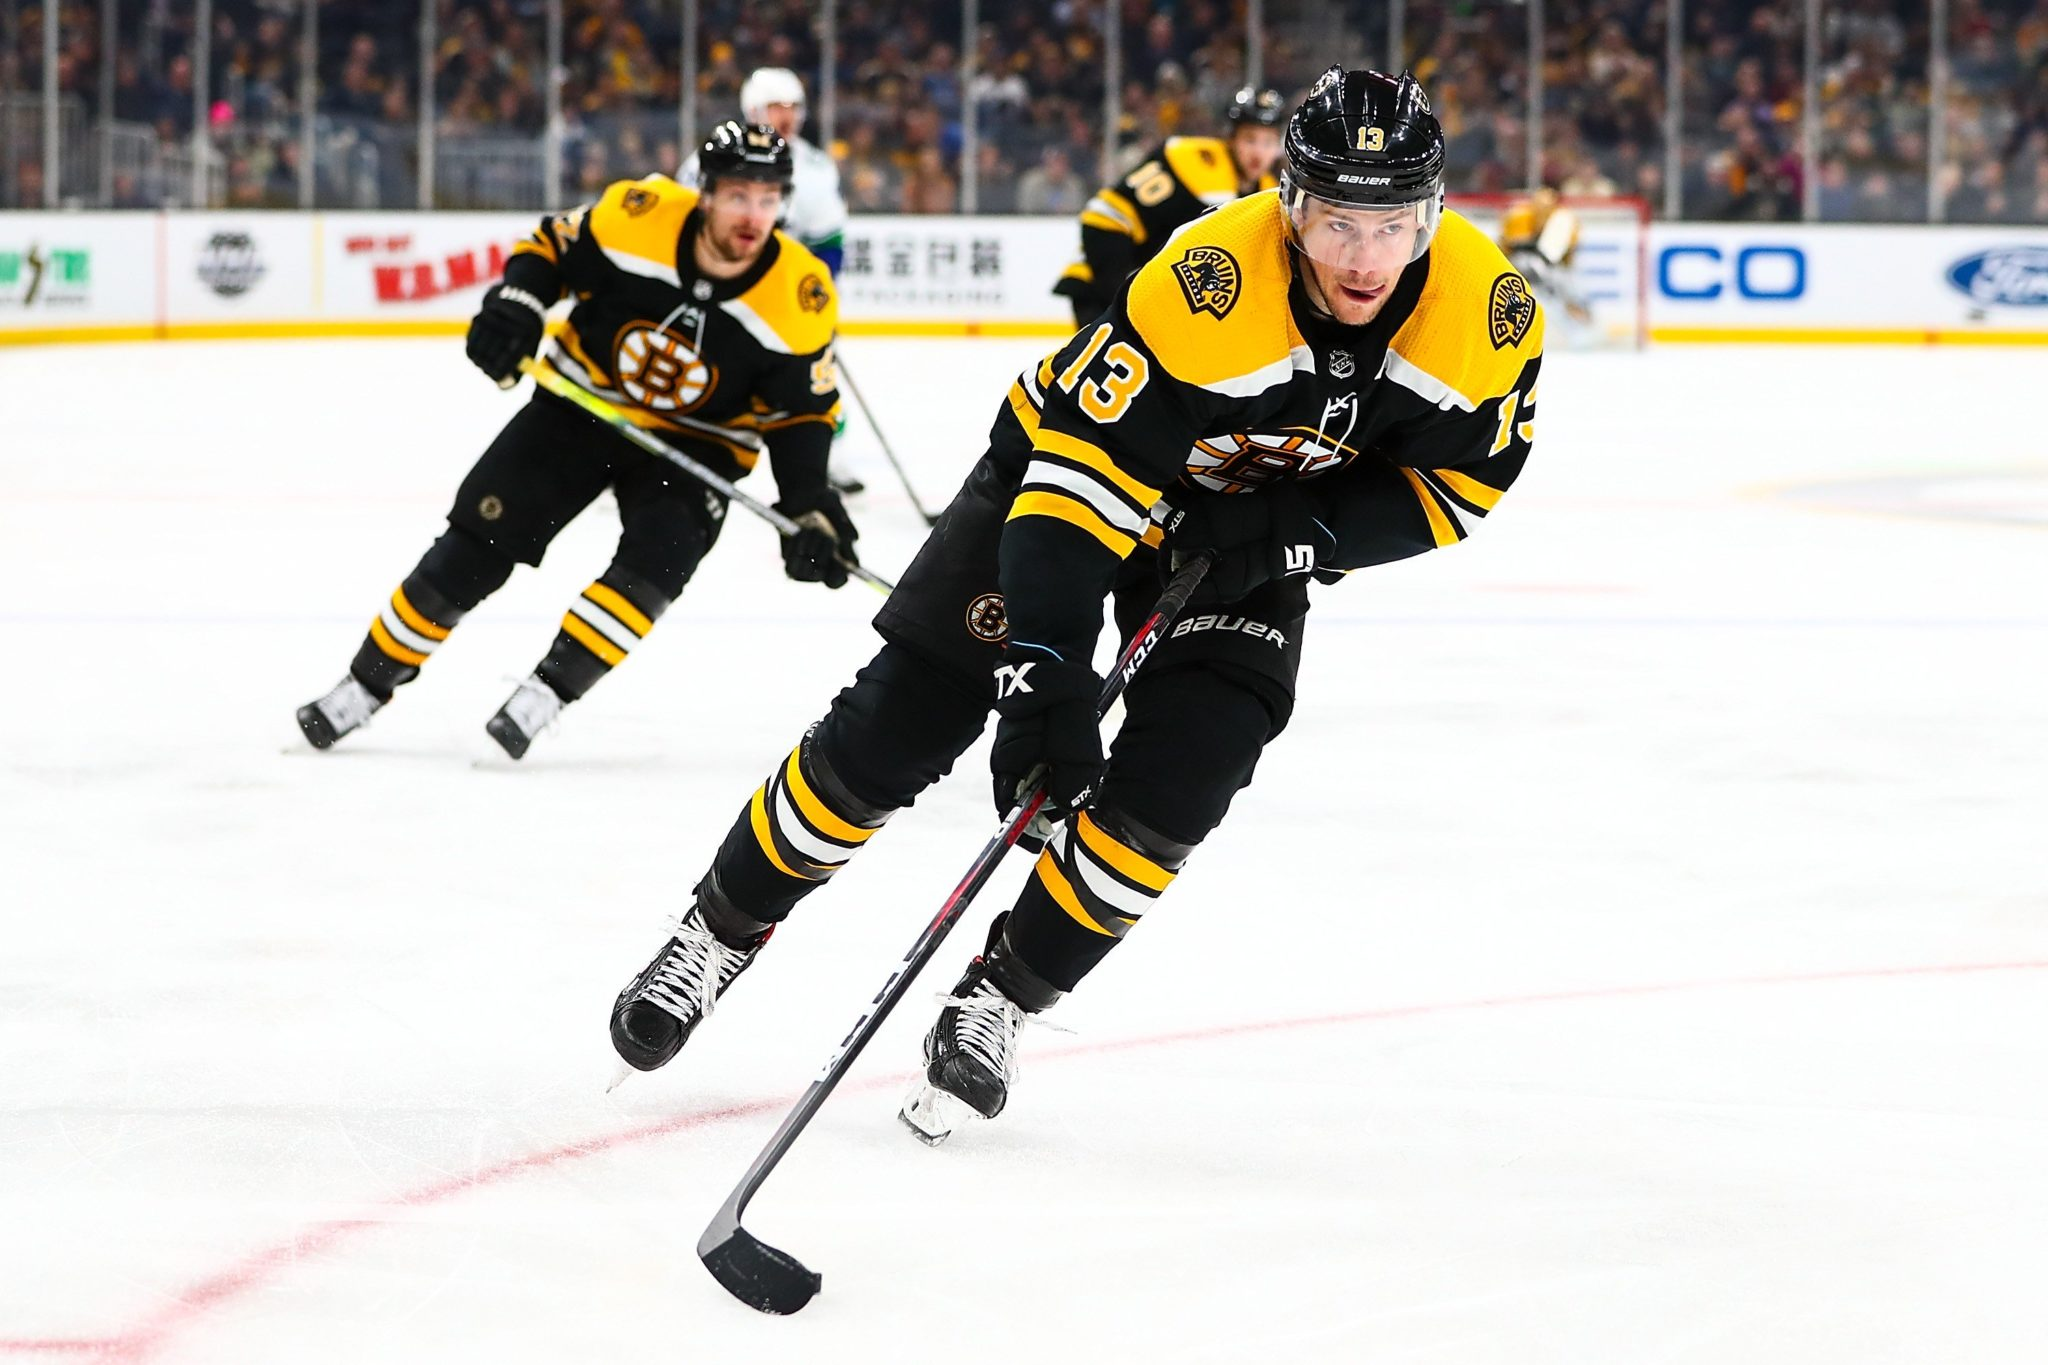 Coyle Sheds Non-Contact Jersey, Has Full Practice With Bruins